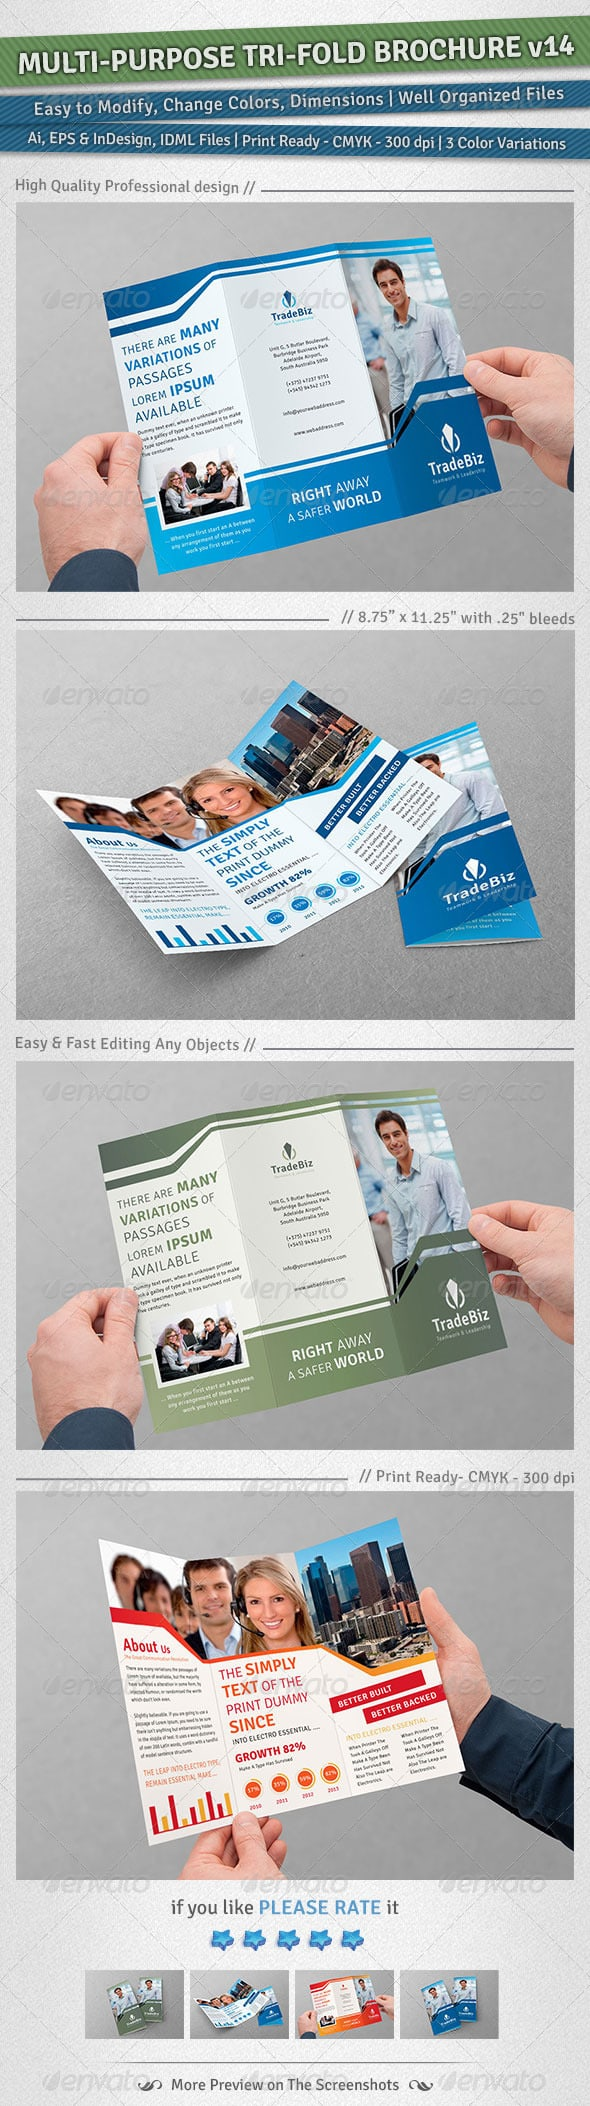 Multi-purpose Tri-Fold Brochure